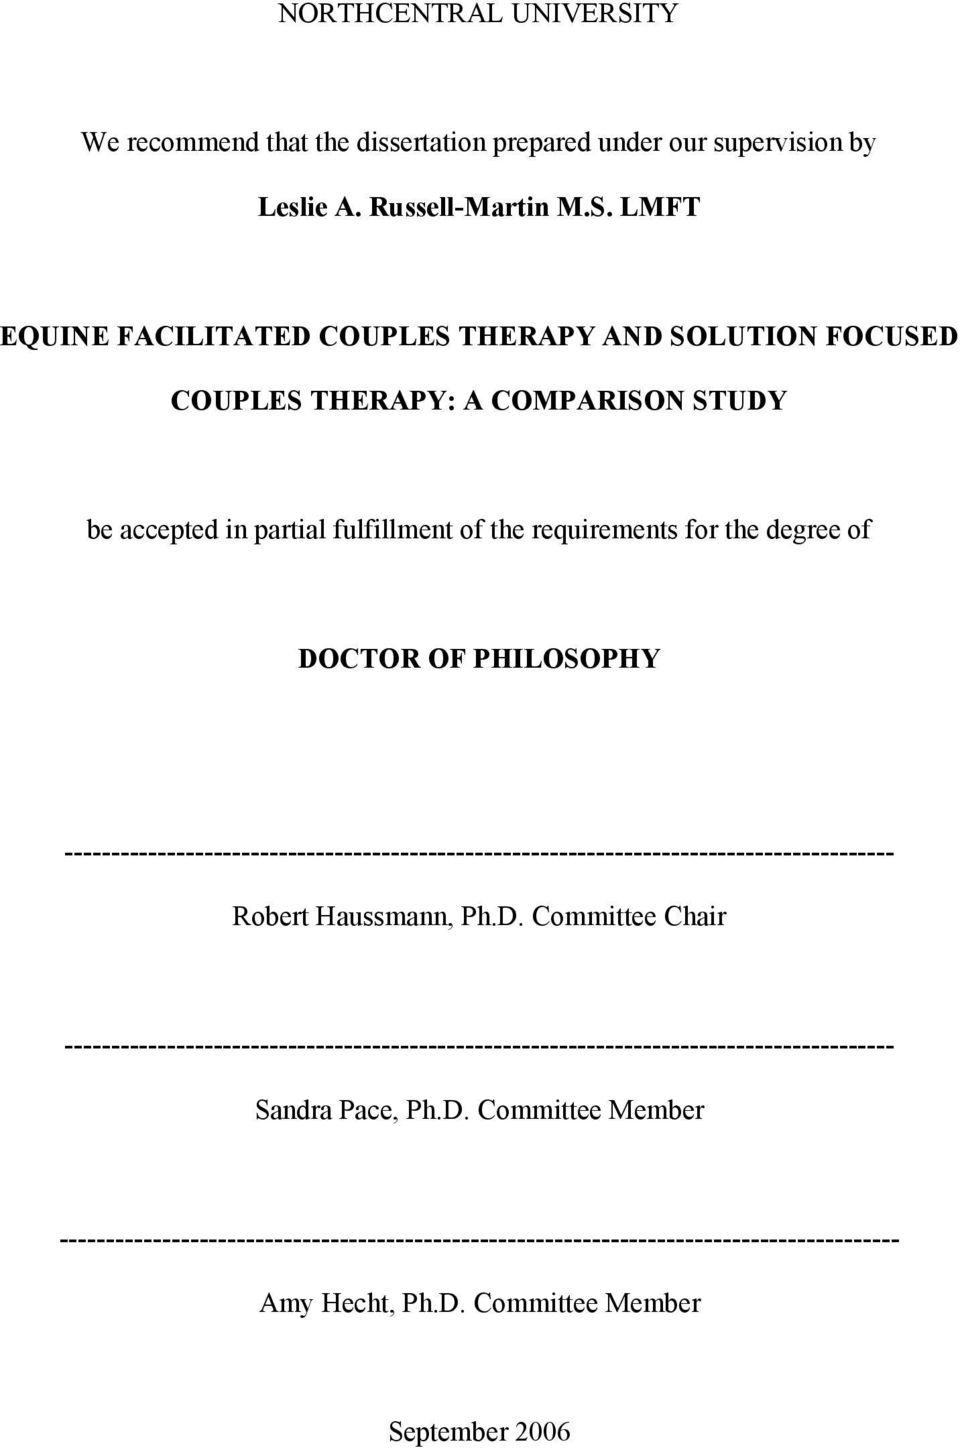 LMFT EQUINE FACILITATED COUPLES THERAPY AND SOLUTION FOCUSED COUPLES THERAPY: A COMPARISON STUDY be accepted in partial fulfillment of the requirements for the degree of DOCTOR